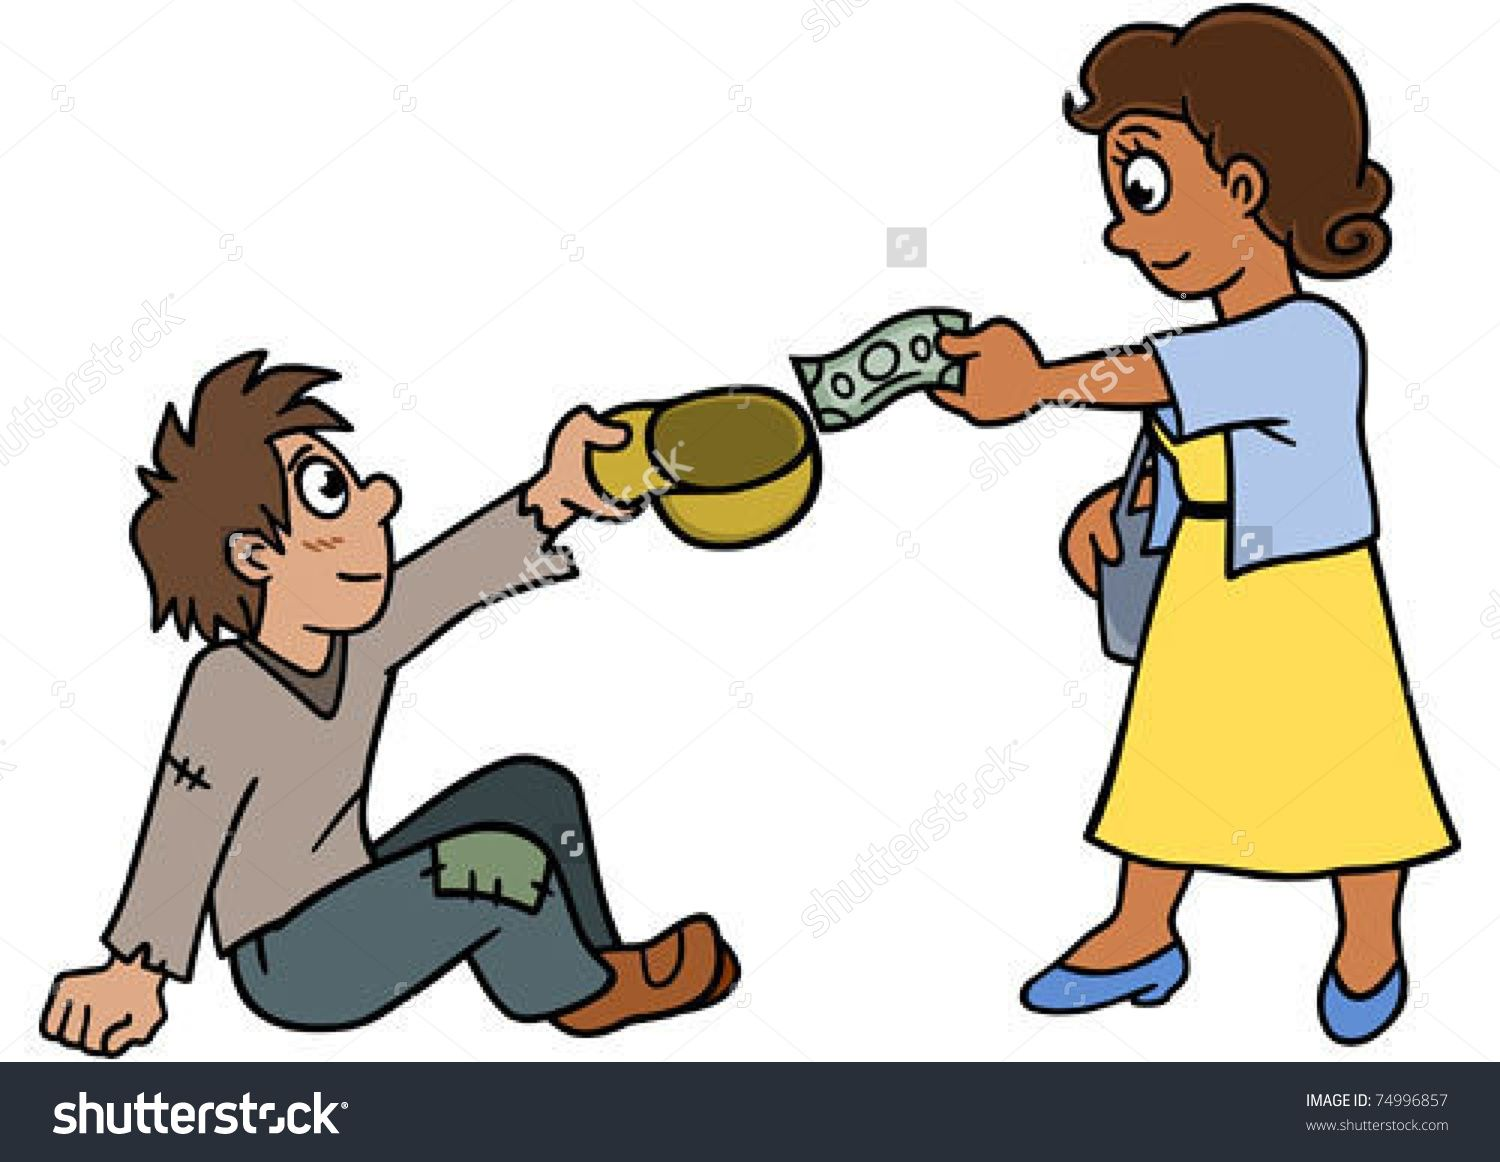 Image result for helping the needy.